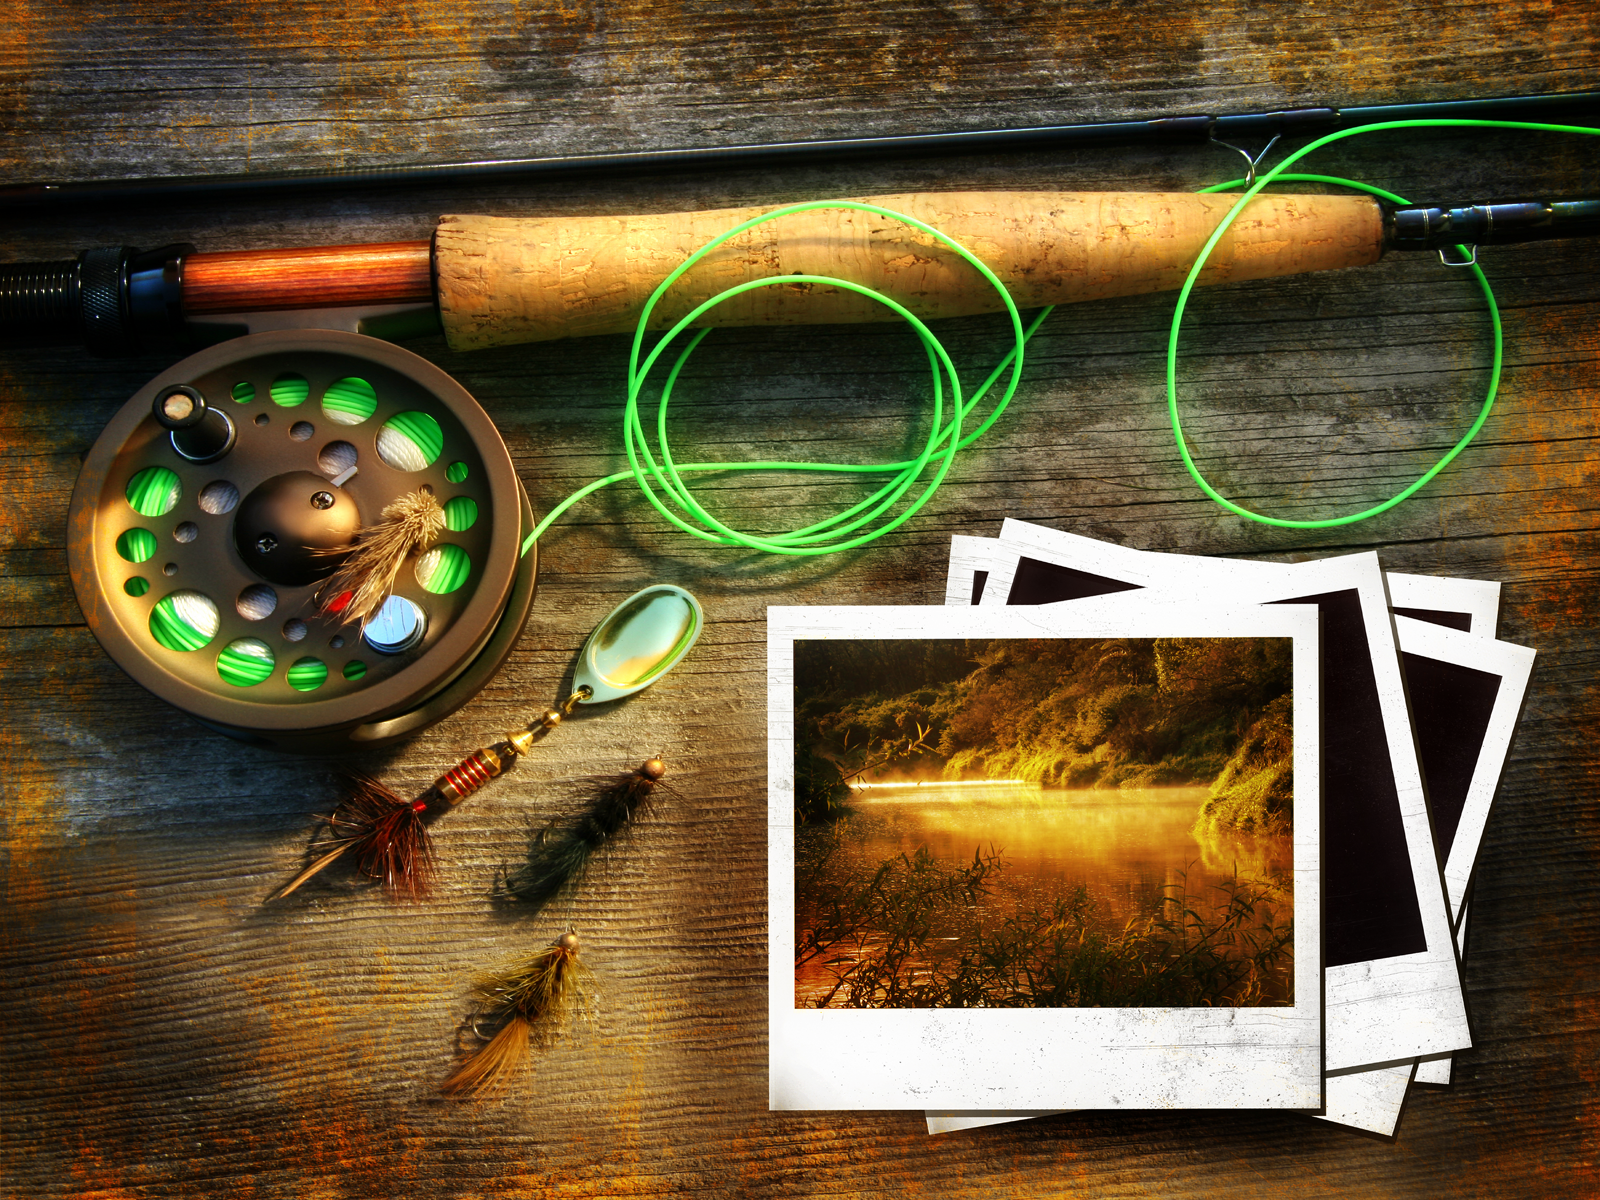 FlyFishing%252BWpII%252Bthe%252Blonggoodbye Fly fishingwallpaper